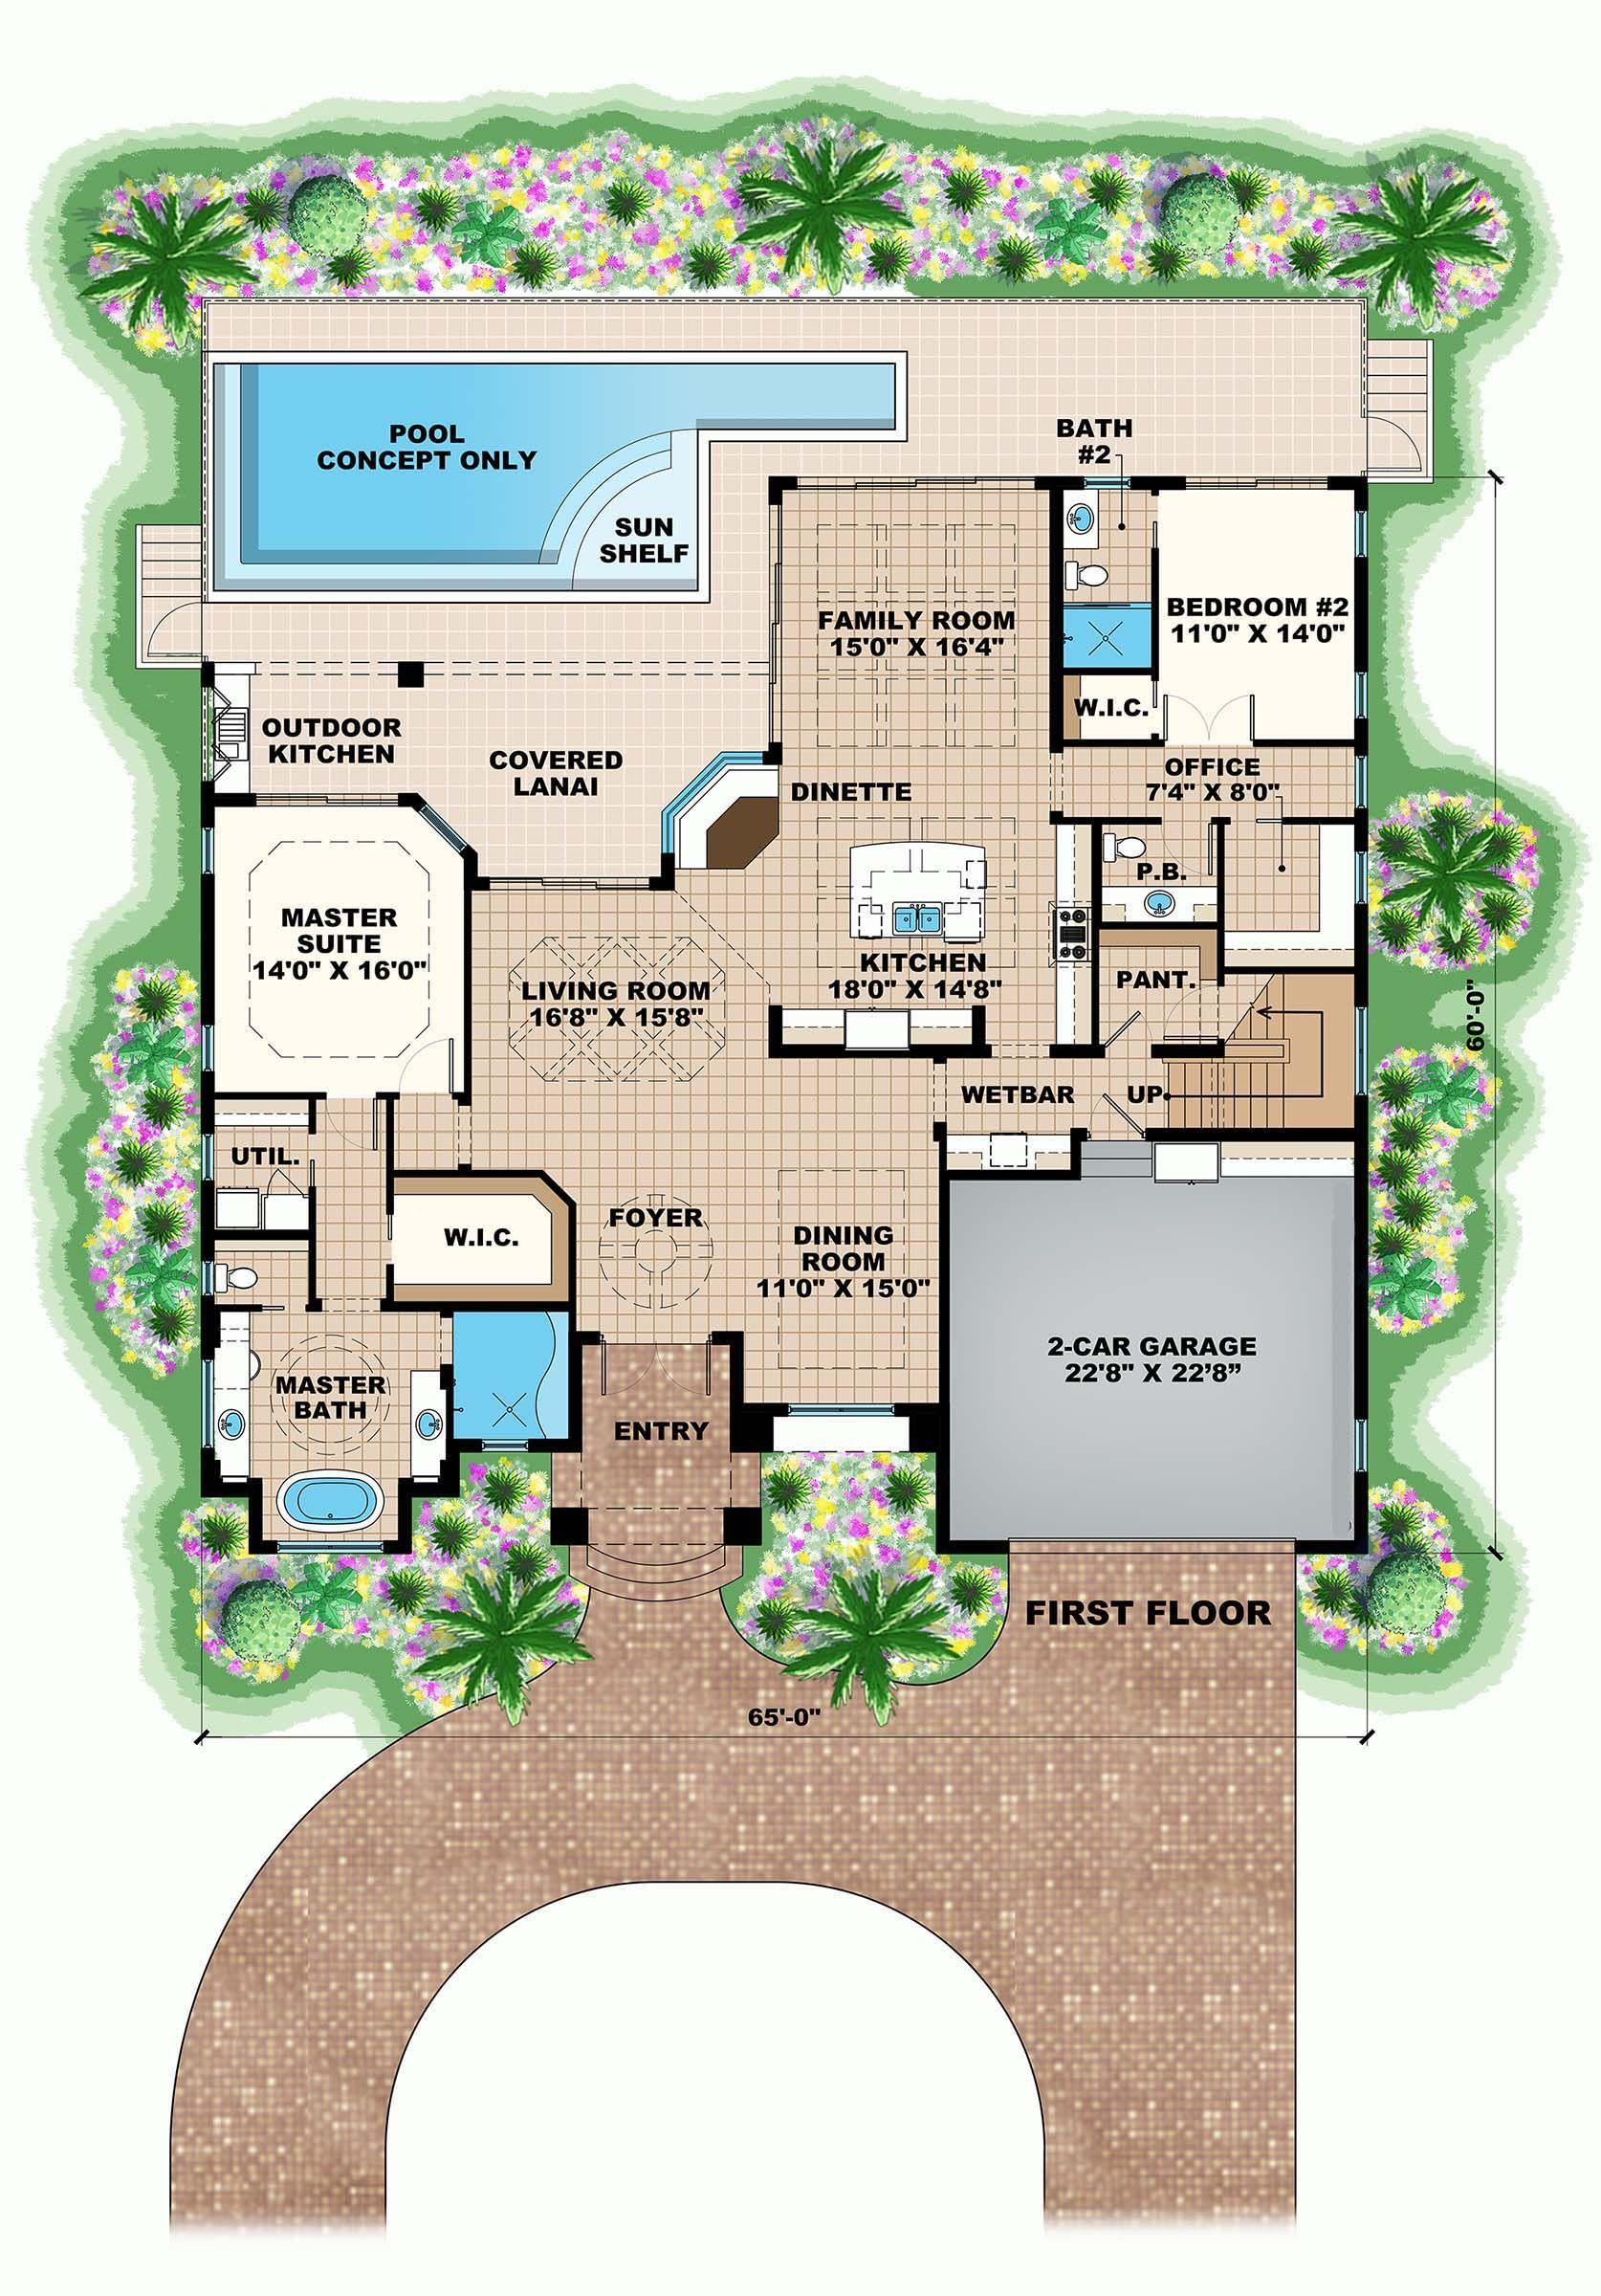 4 Bedroom Coastal House Plan With Pool 3276 Sq Ft 3 5 Bath Pool House Plans Coastal House Plans Coastal Room